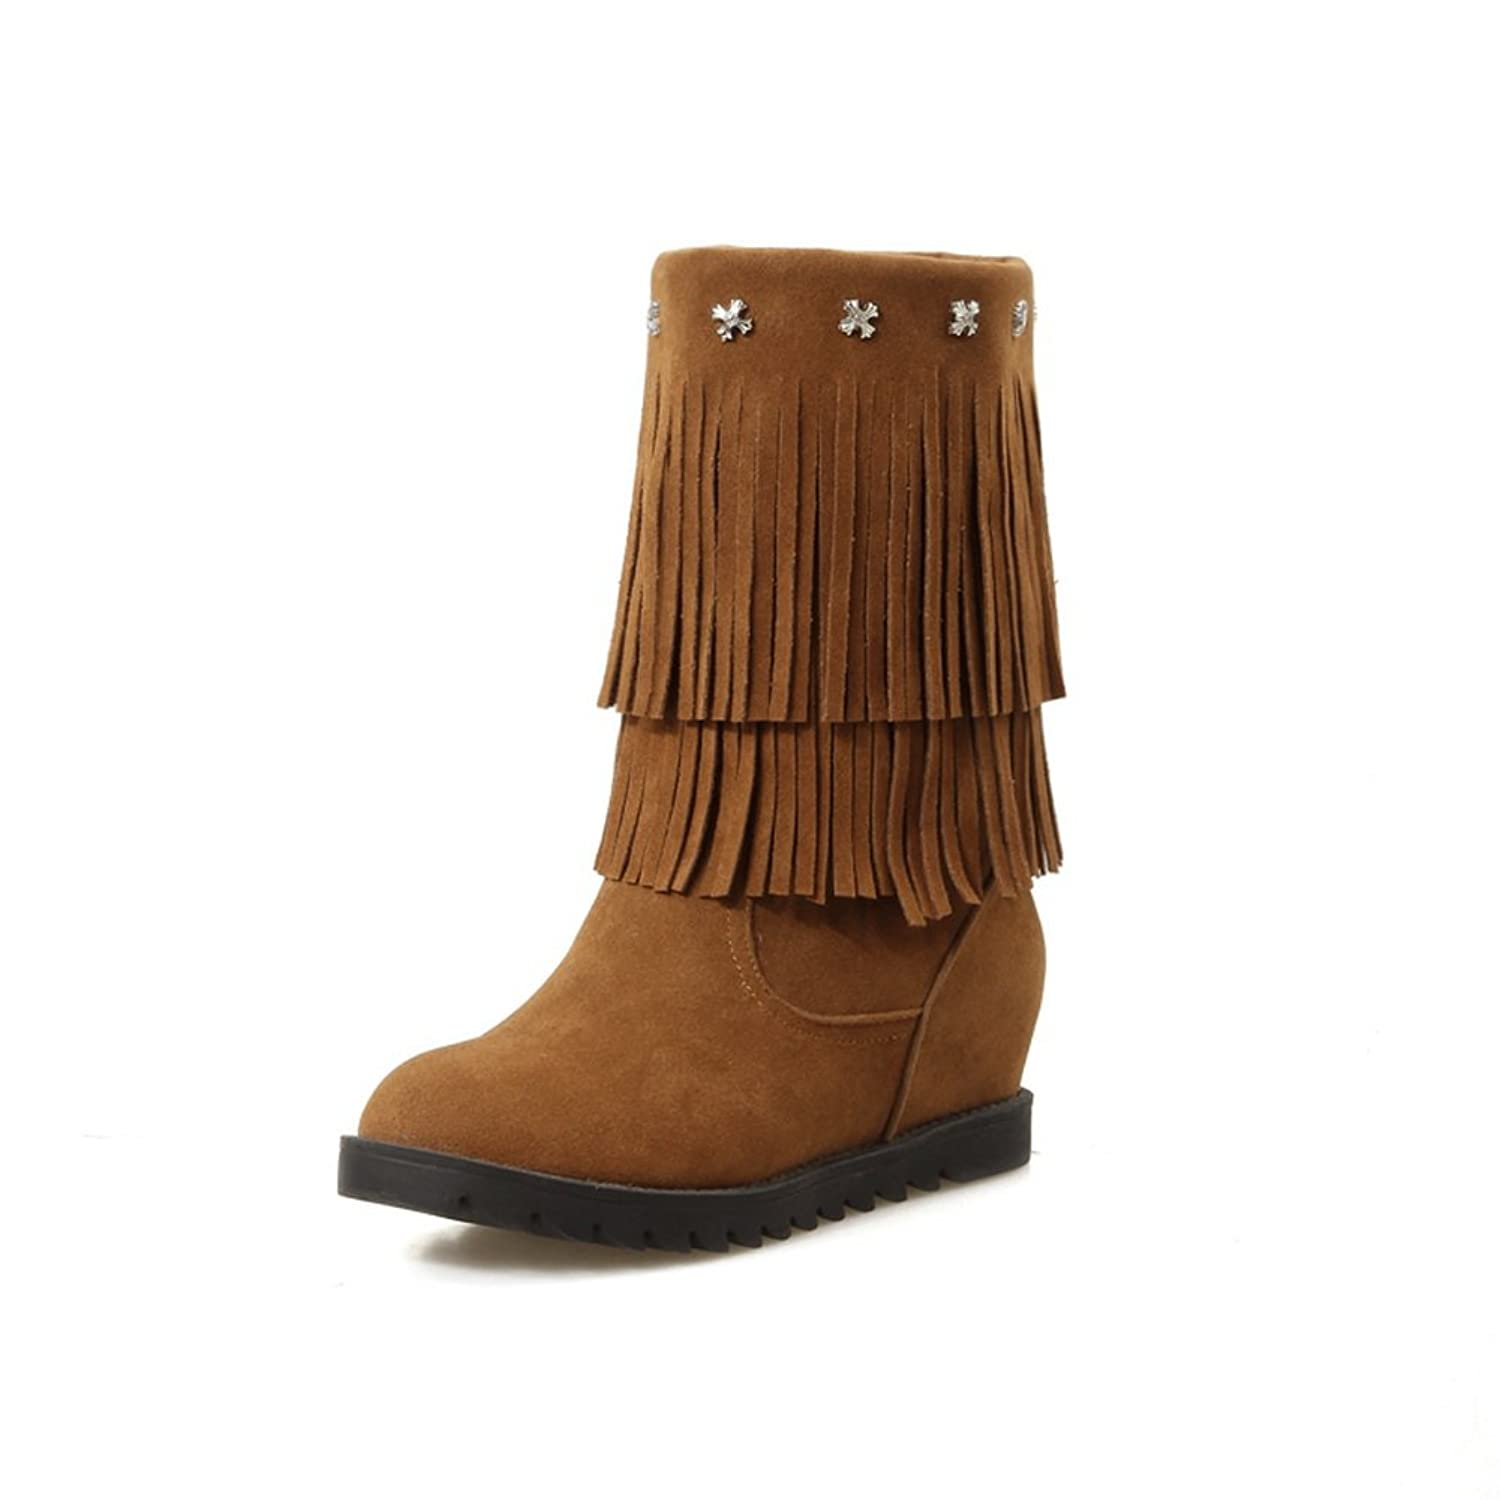 Womens Metal Ornament Tassels Heighten Inside Yellow Imitated Leather Boots - 8.5 B(M) US